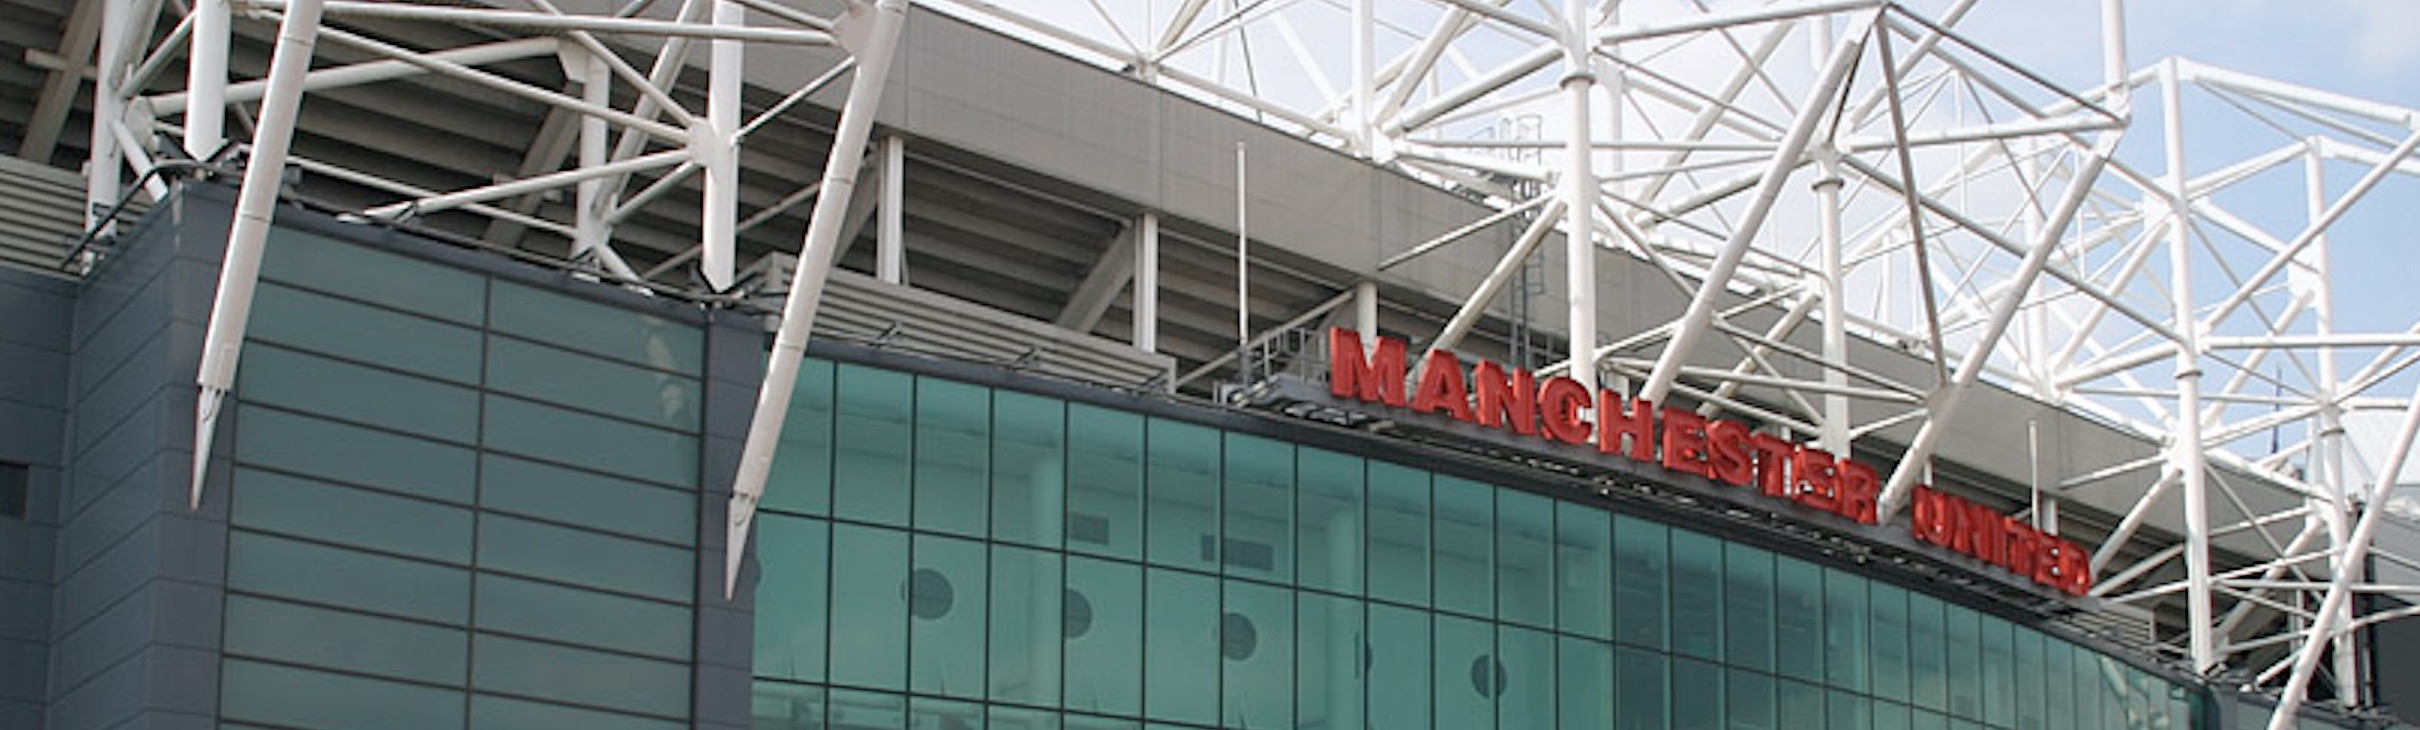 Man United v Sheffield / Daytrip by Coach & Ferry